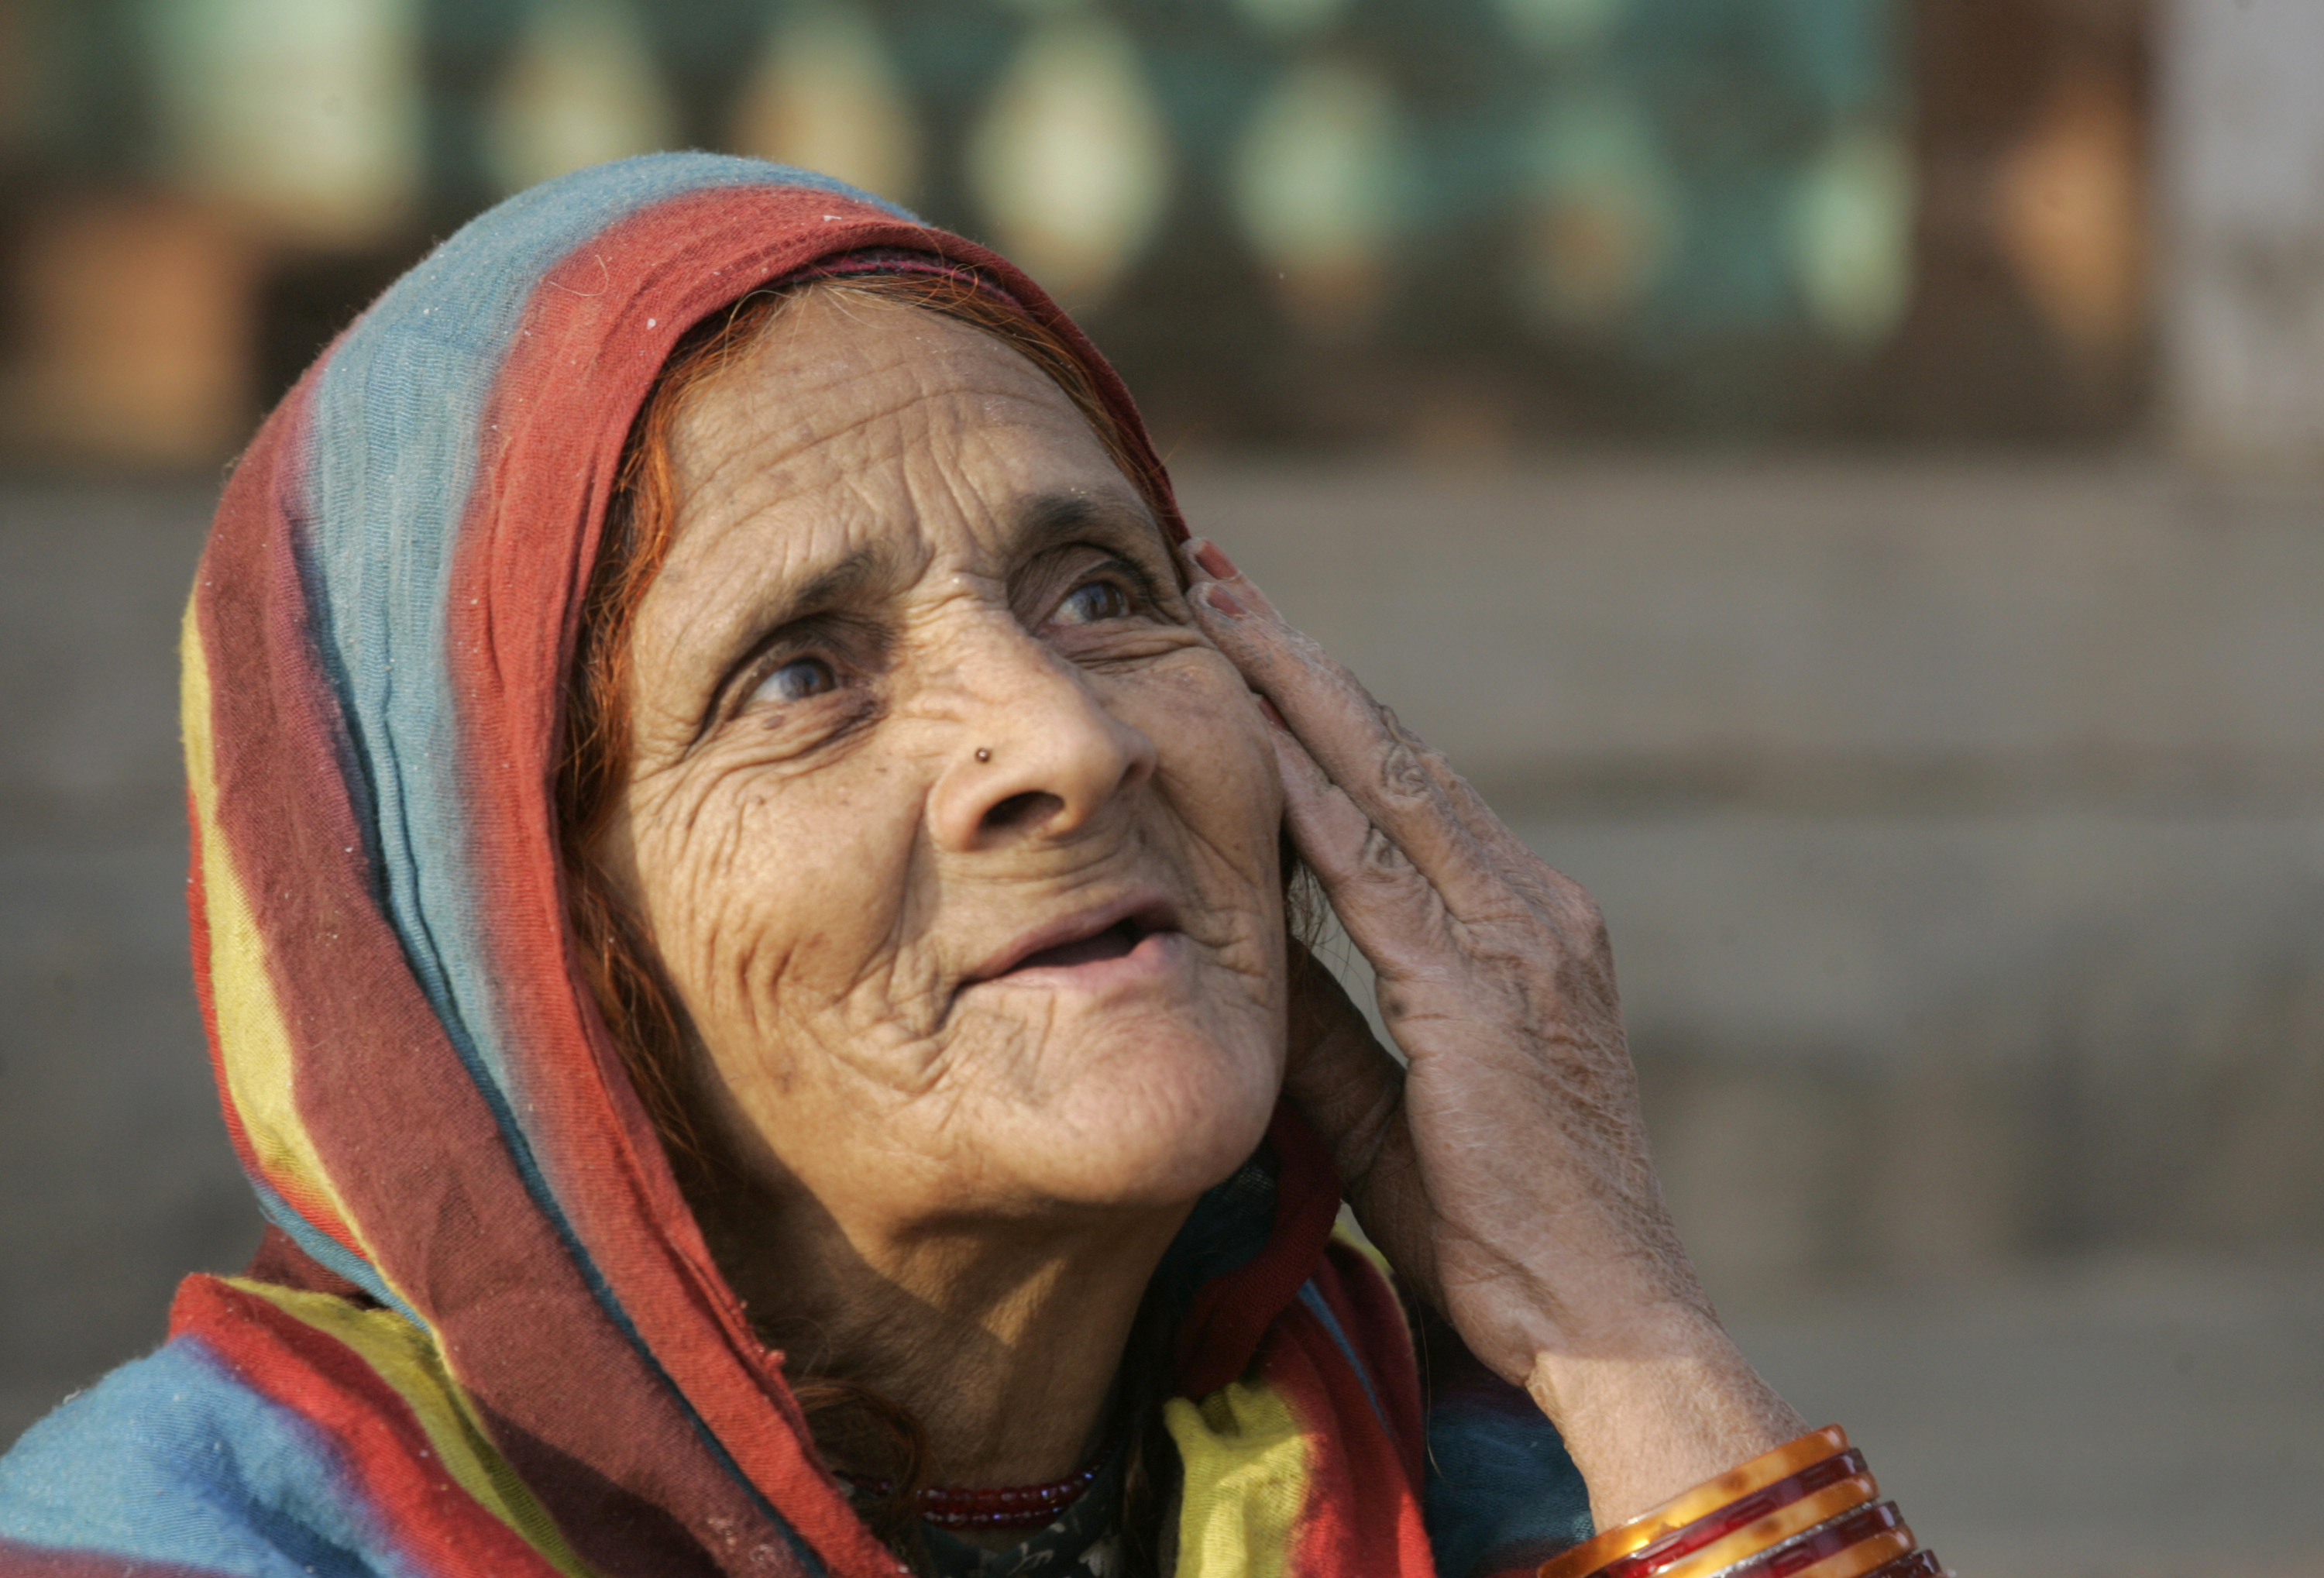 old age pension schemes in india are insufficient but there s a